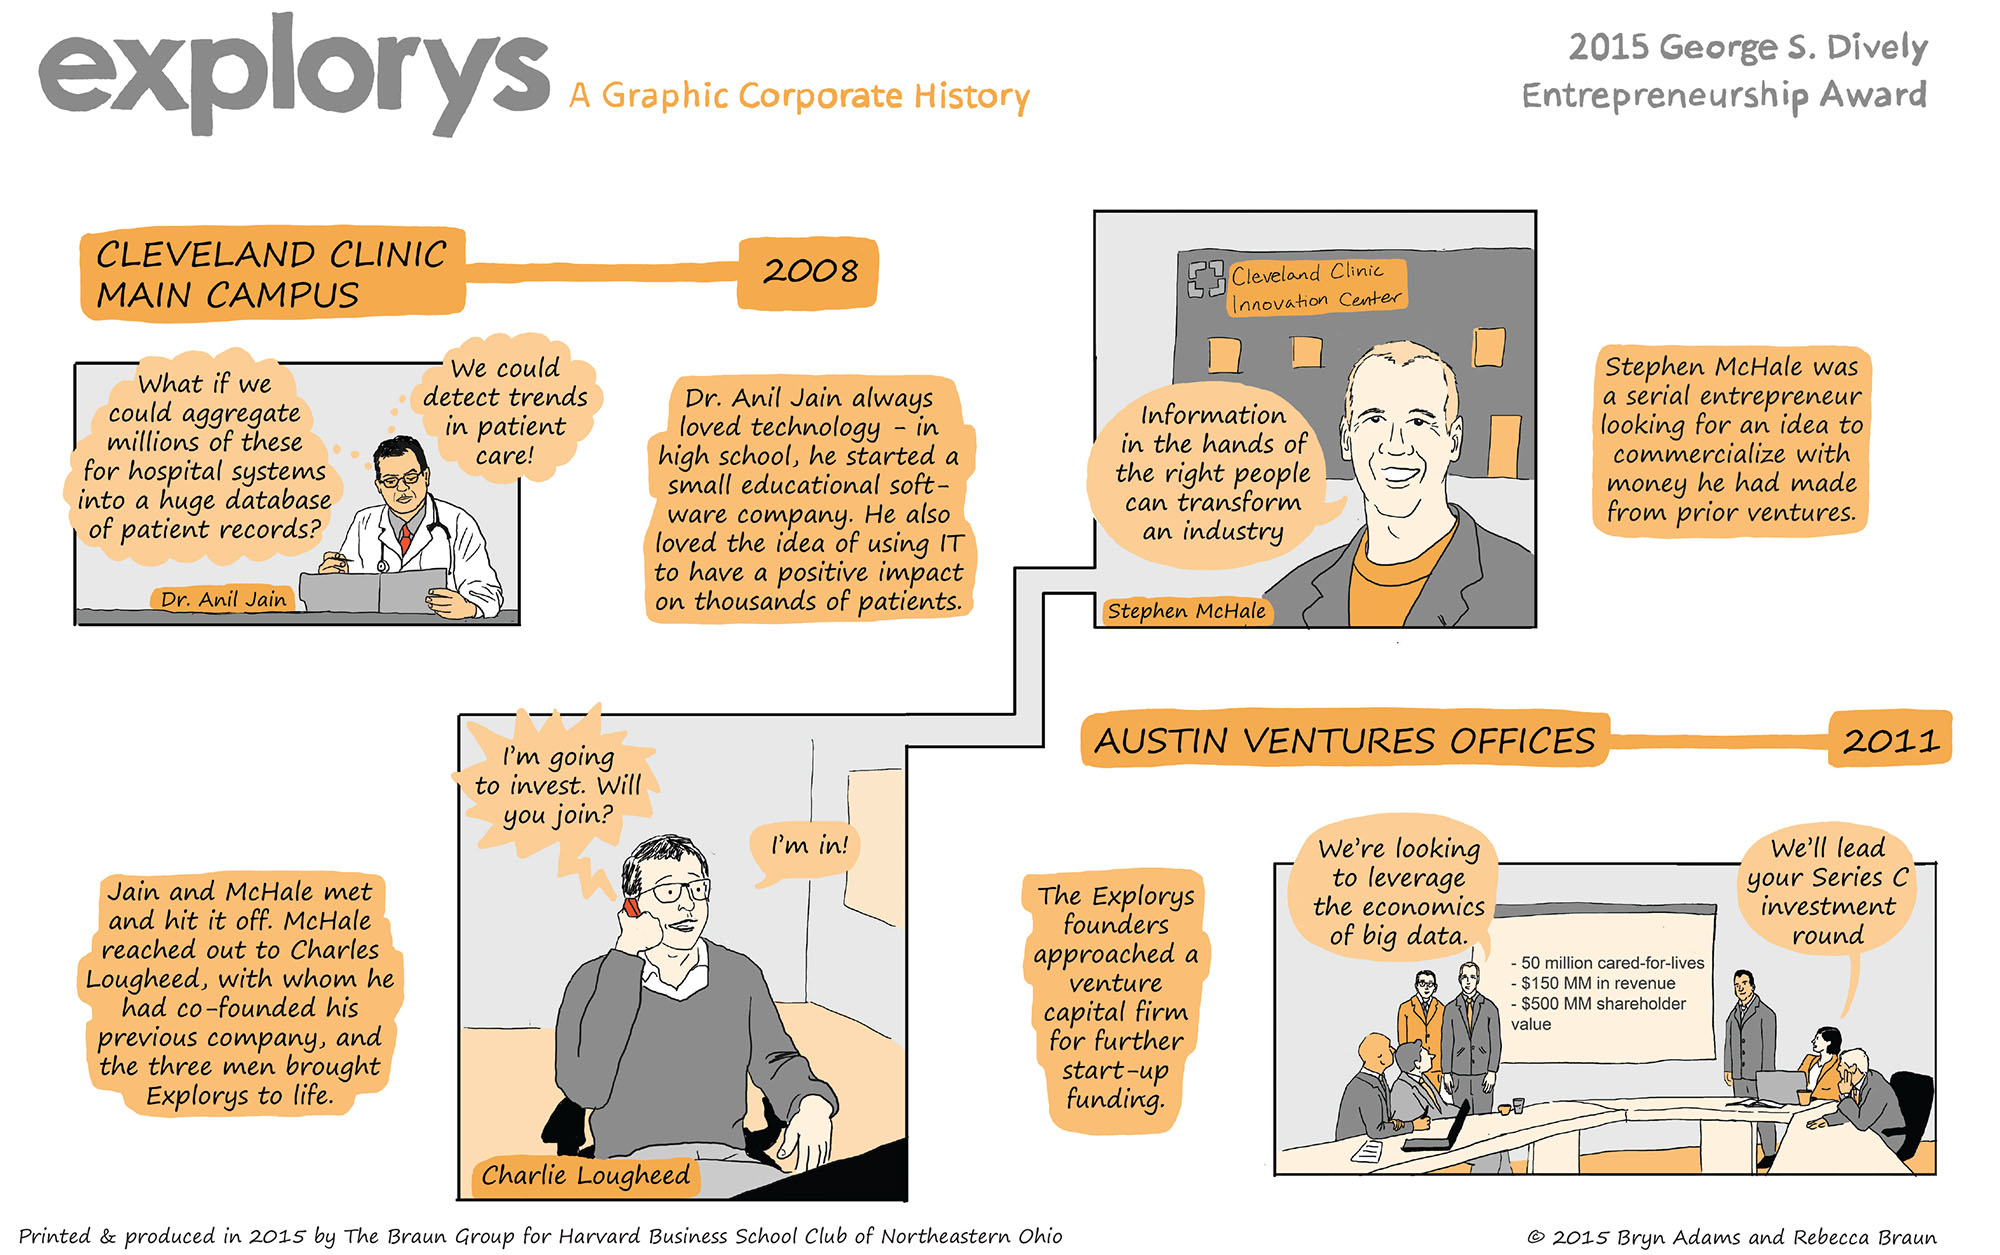 Explorys: A Graphic Corporate History